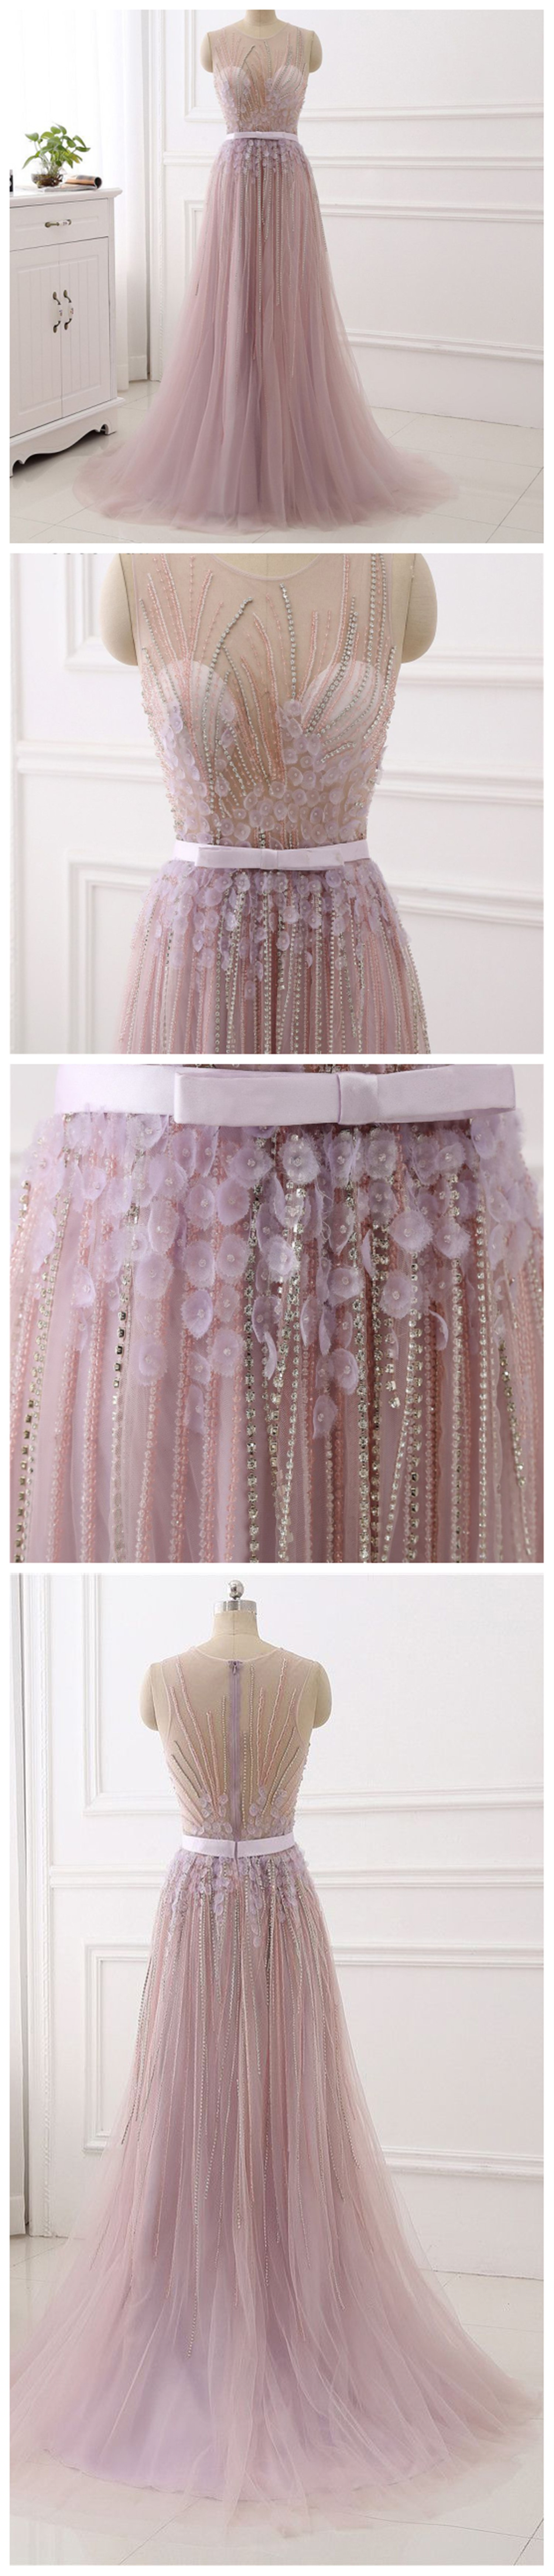 Pink see through lace dress  Sexy See Through Dusty Pink Lace Beaded Evening Prom Dresses